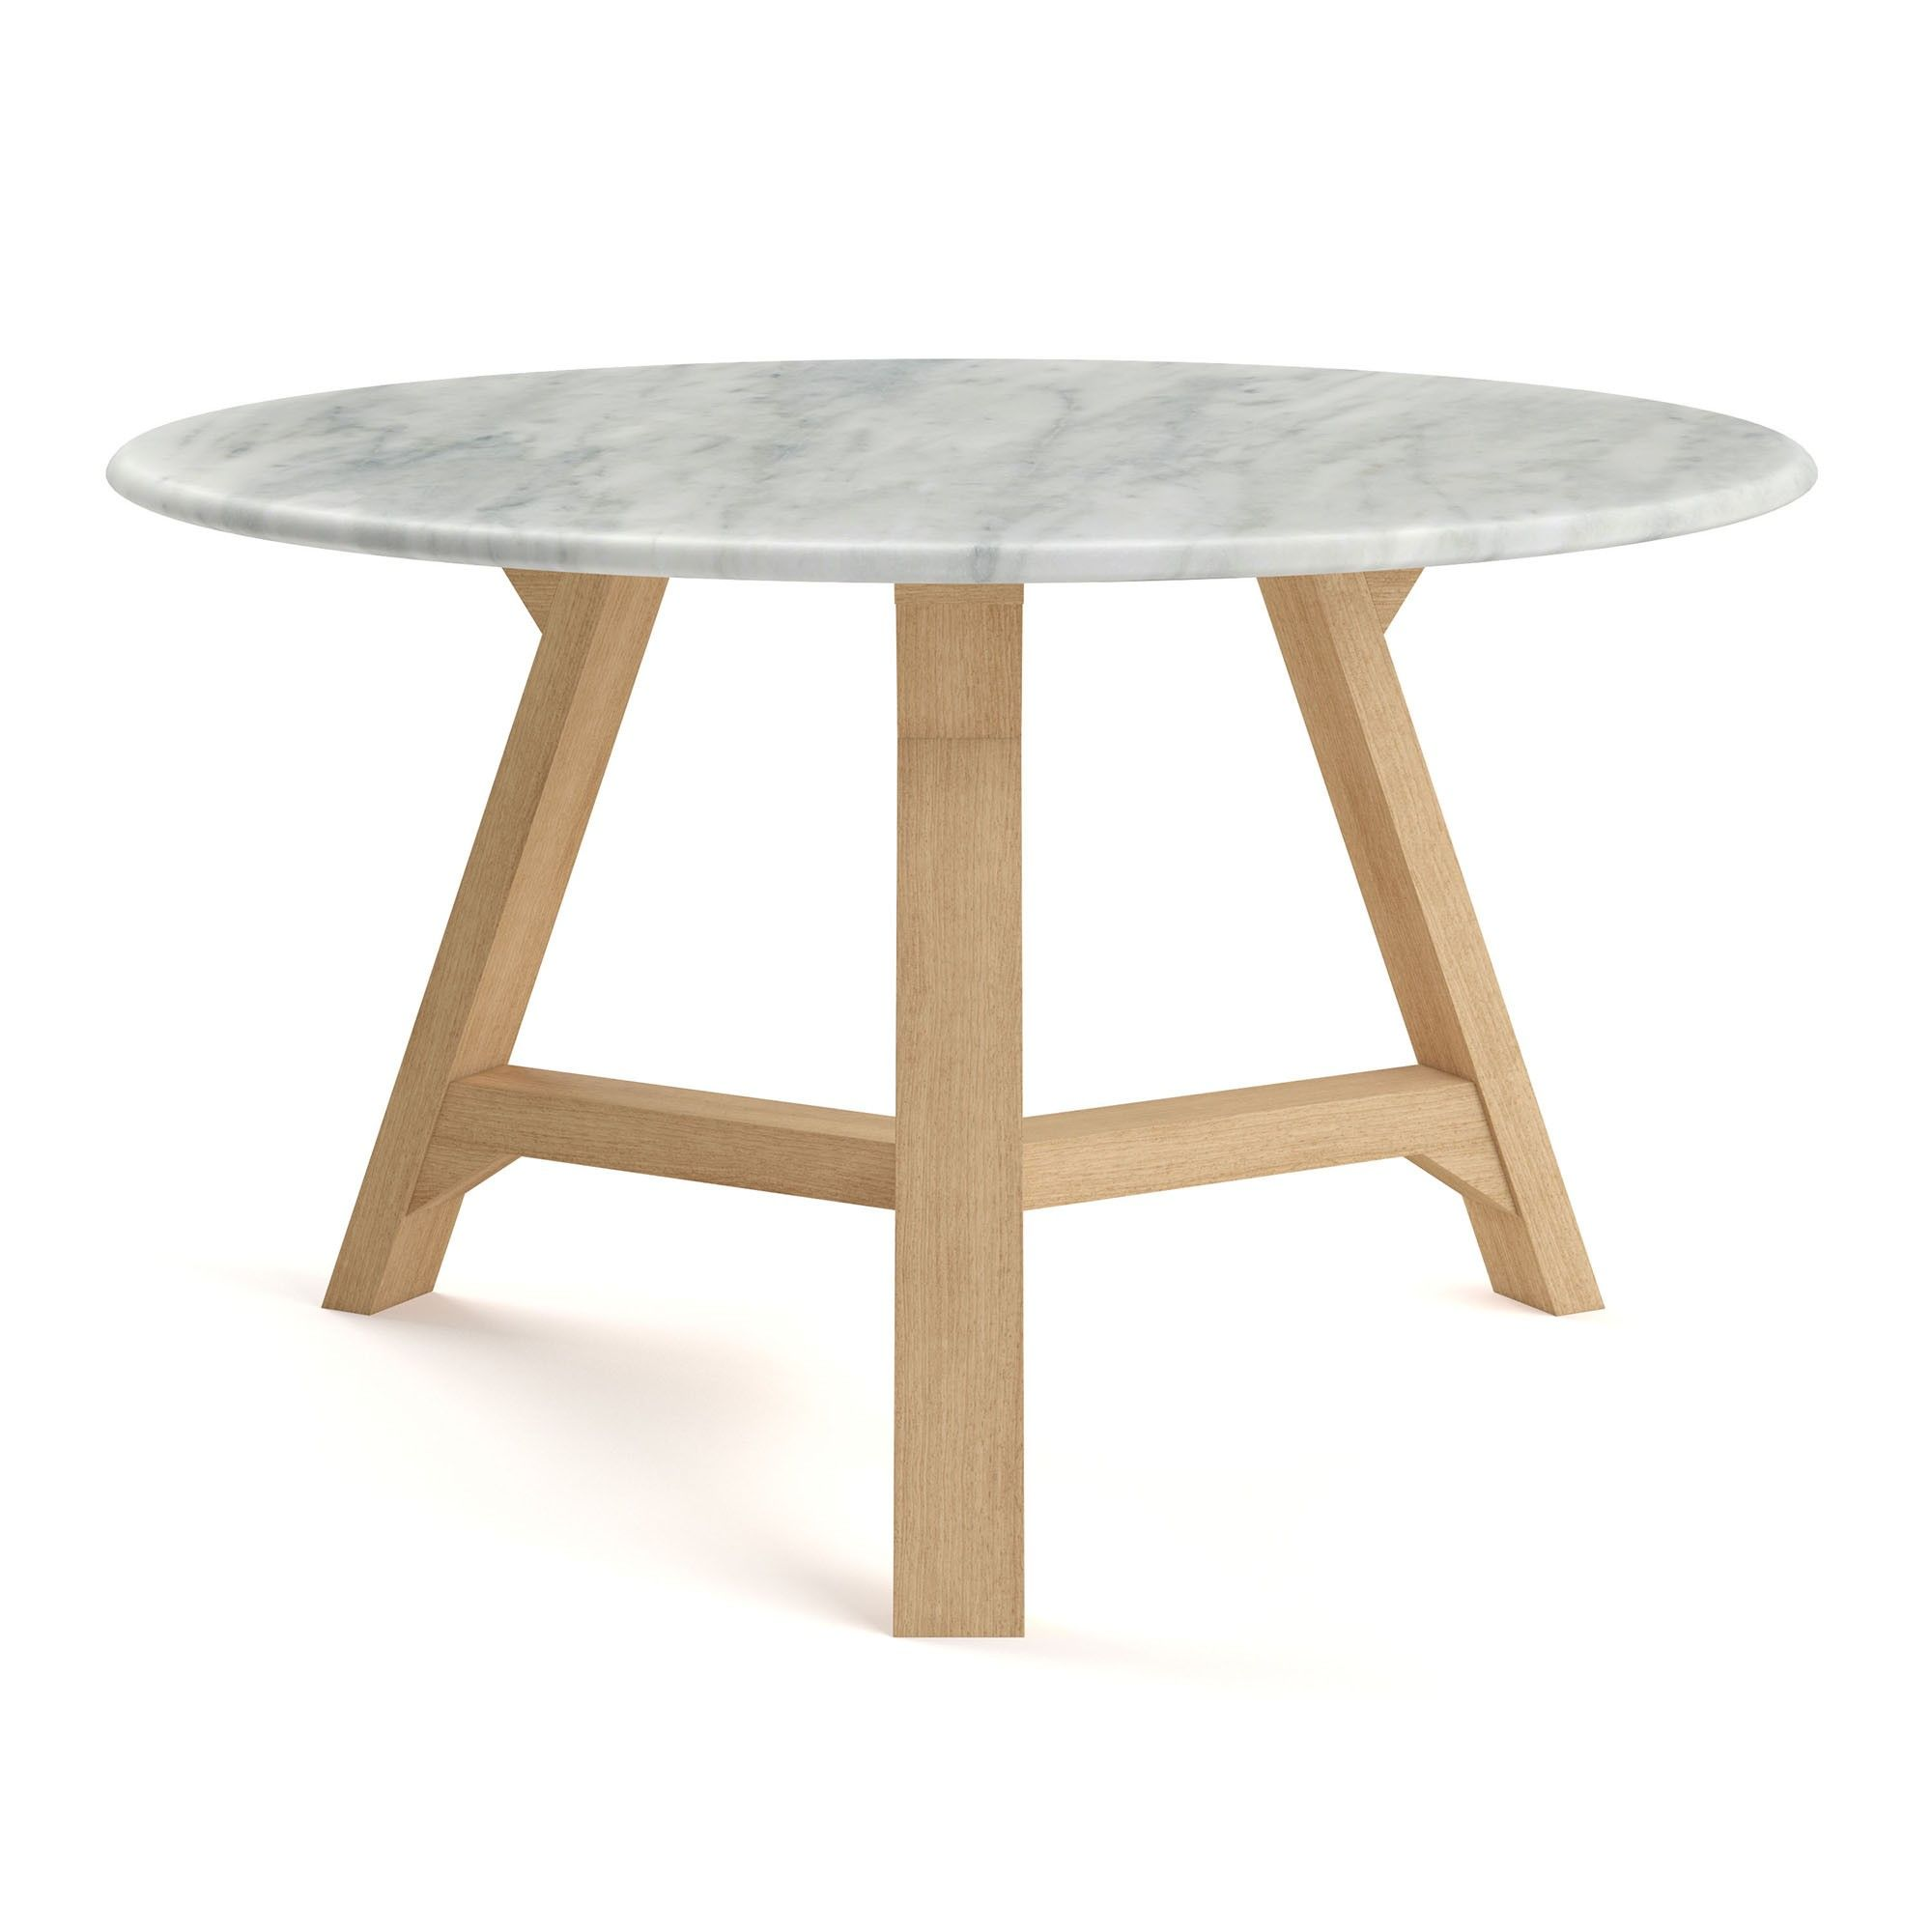 31 5 Aubrey Coffee Table With Faux Marble Top Natural Aeon In 2021 Faux Marble Coffee Table Metal Accent Table [ 2000 x 2000 Pixel ]